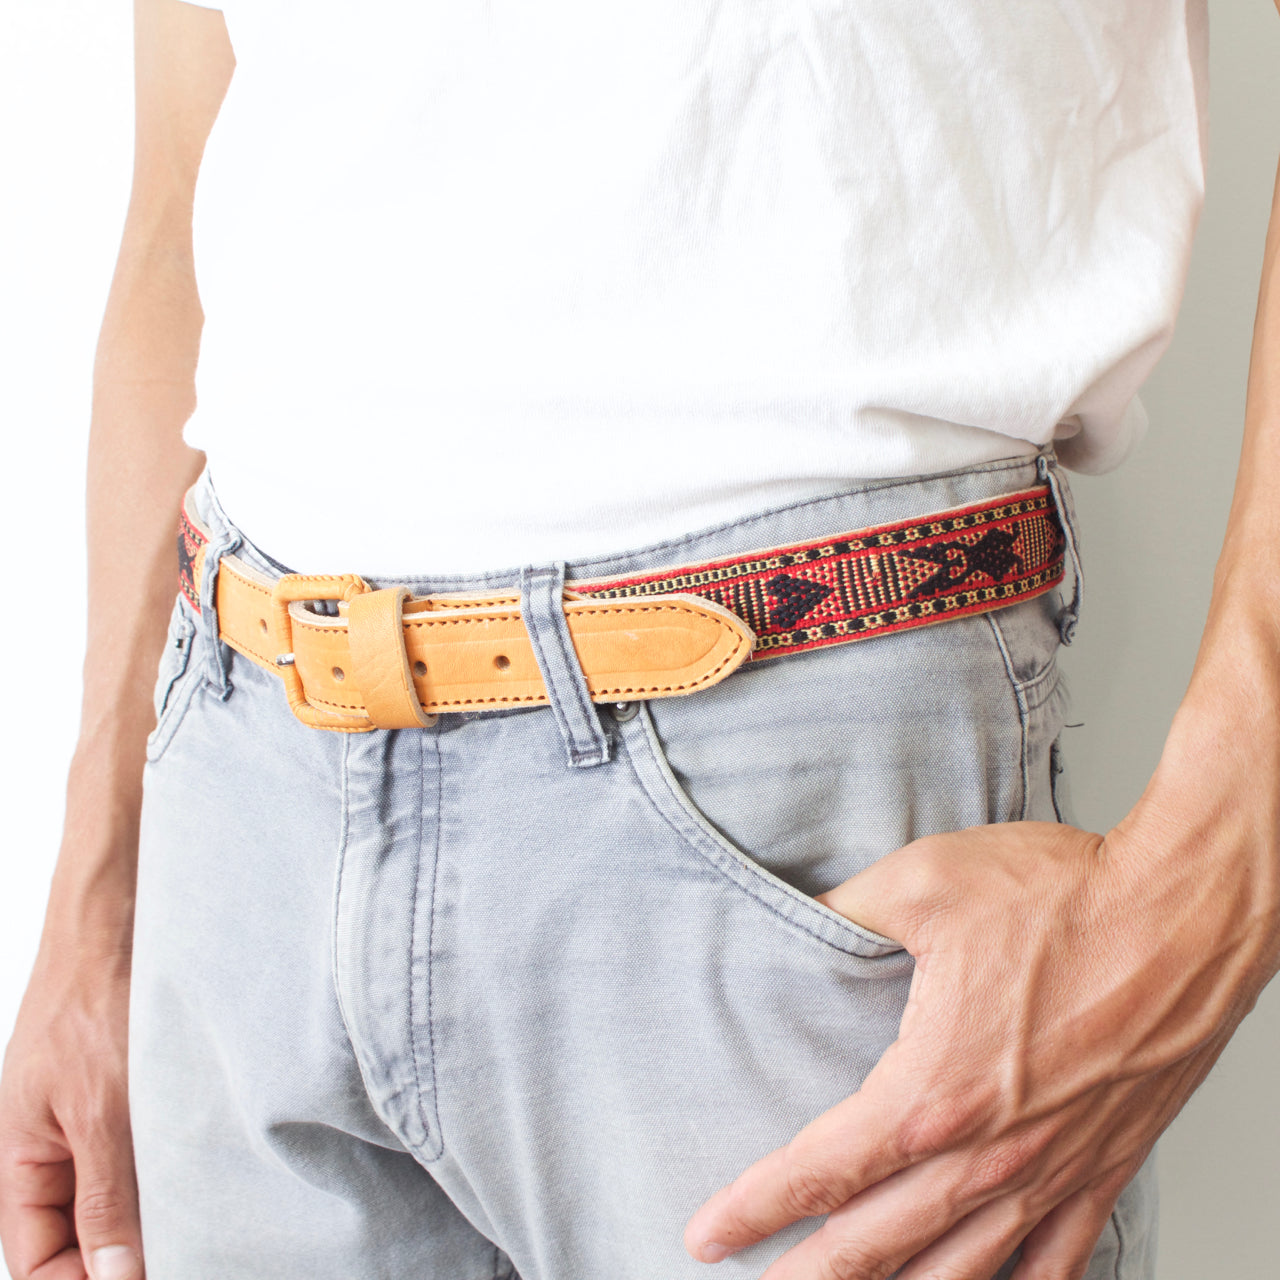 Santo Tomas Belt - Size 38 No. 03